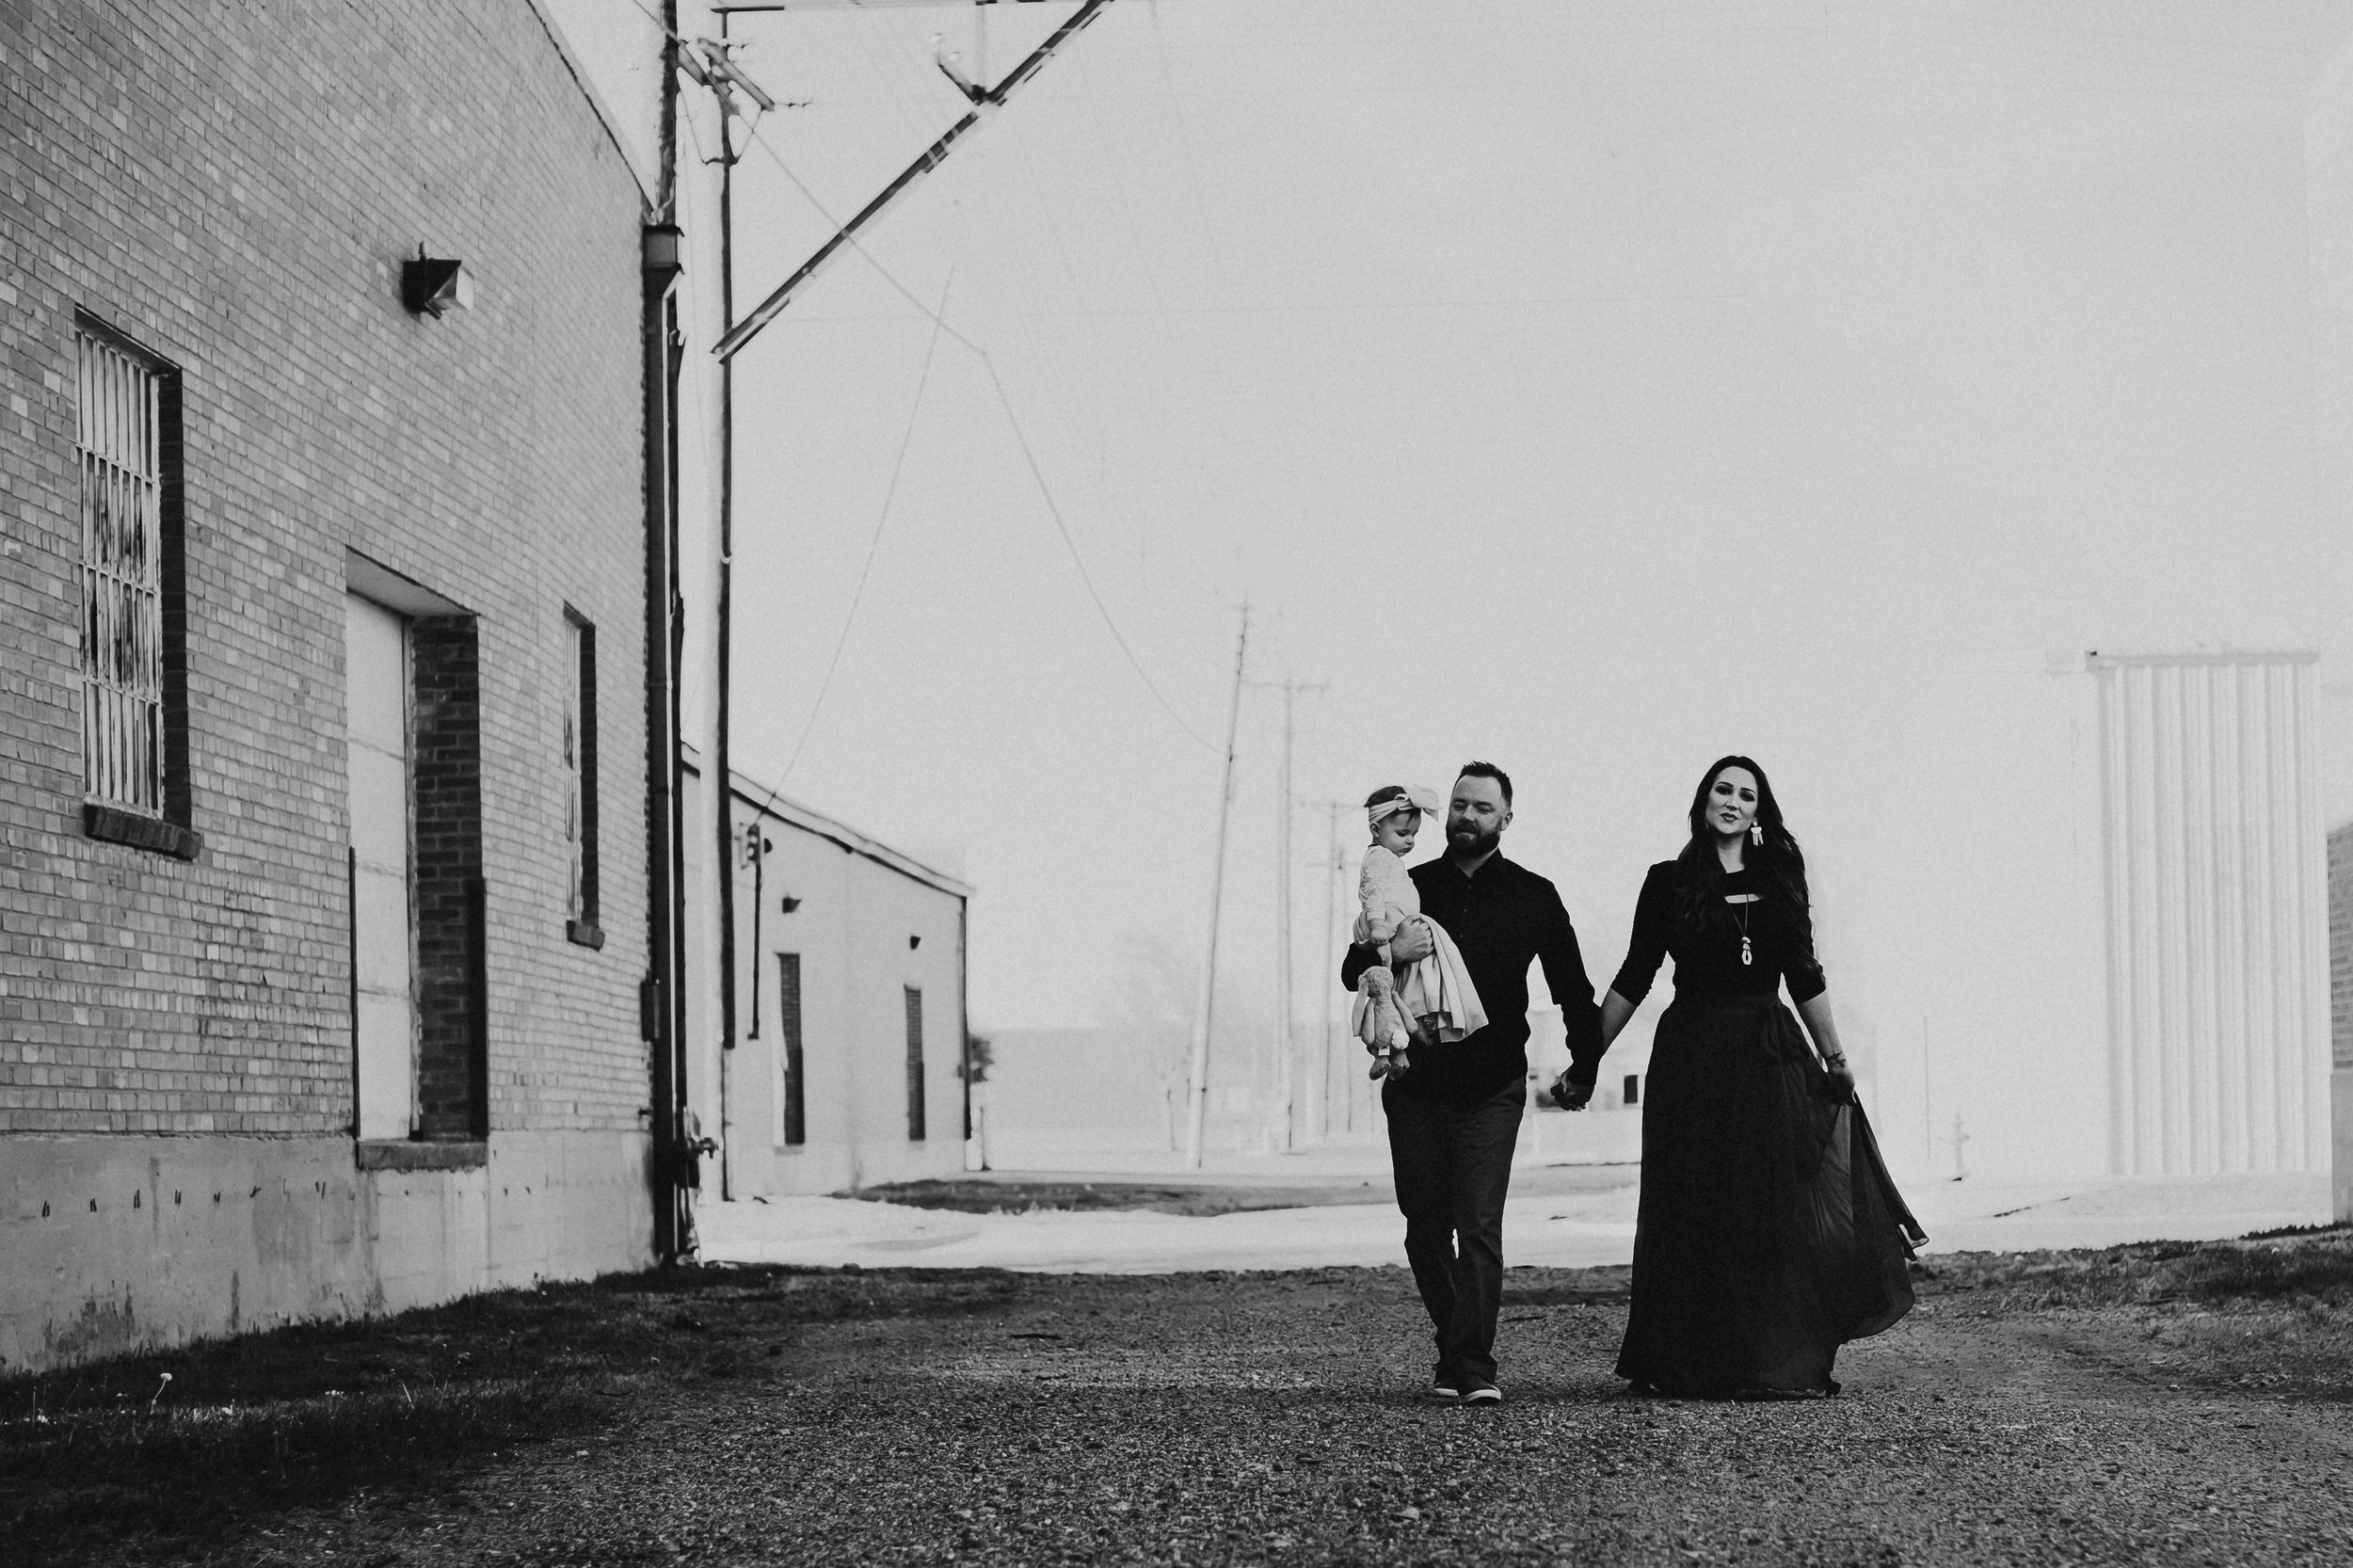 Walking hand in hand down downtown Amarillo black and white #rubyred #familyphotos #downtown #hairstyle #personality #amarillotexas #familyphotographer #lifestylephotos #amarillophotographer #locationchoice #texasfamilyphotos #familyofthree